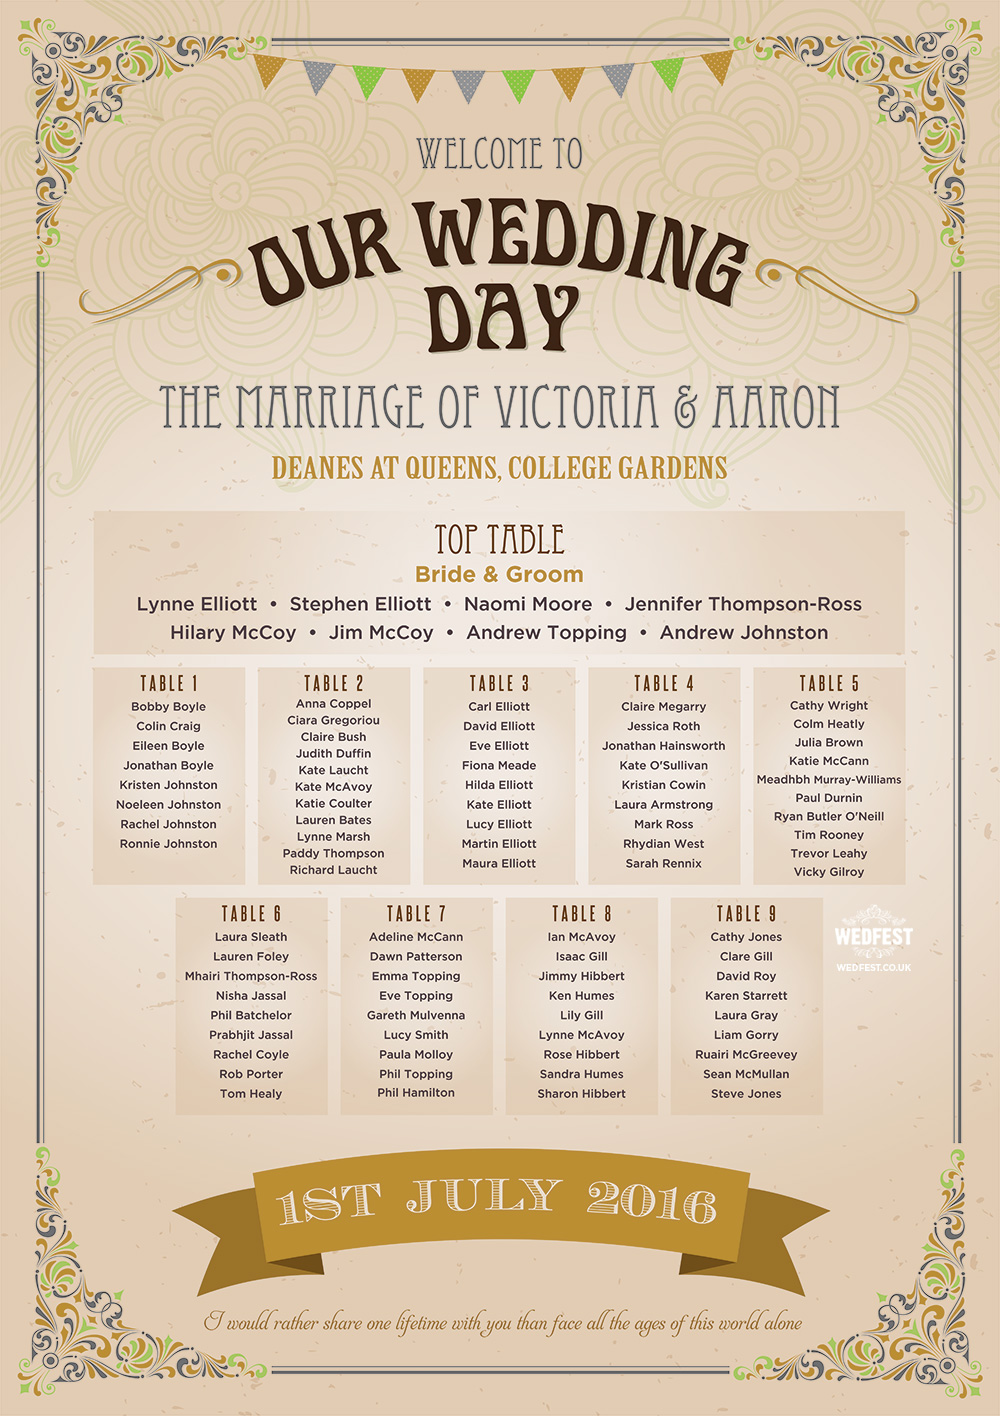 vintage boho shabby chic wedding table seating plan